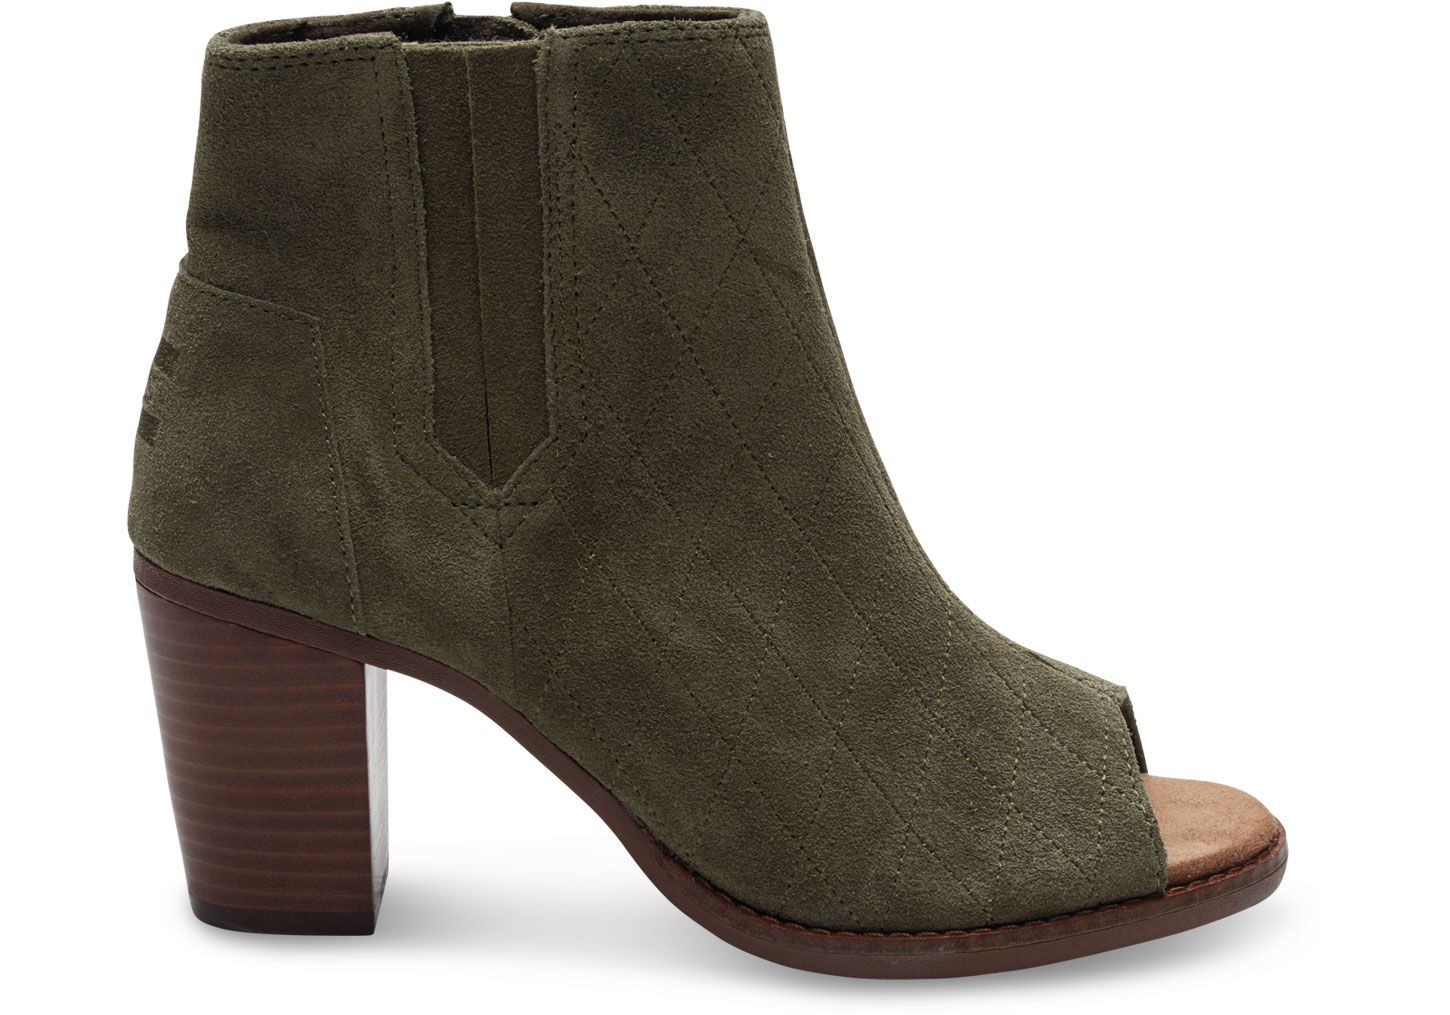 Search Reasonable Prices On TOMS Green Tarmac Olive Suede Quilted Women's Majorca  Peeptoe Booties., Get yours today at TOMS Green Tarmac Olive Suede Quilted  ...